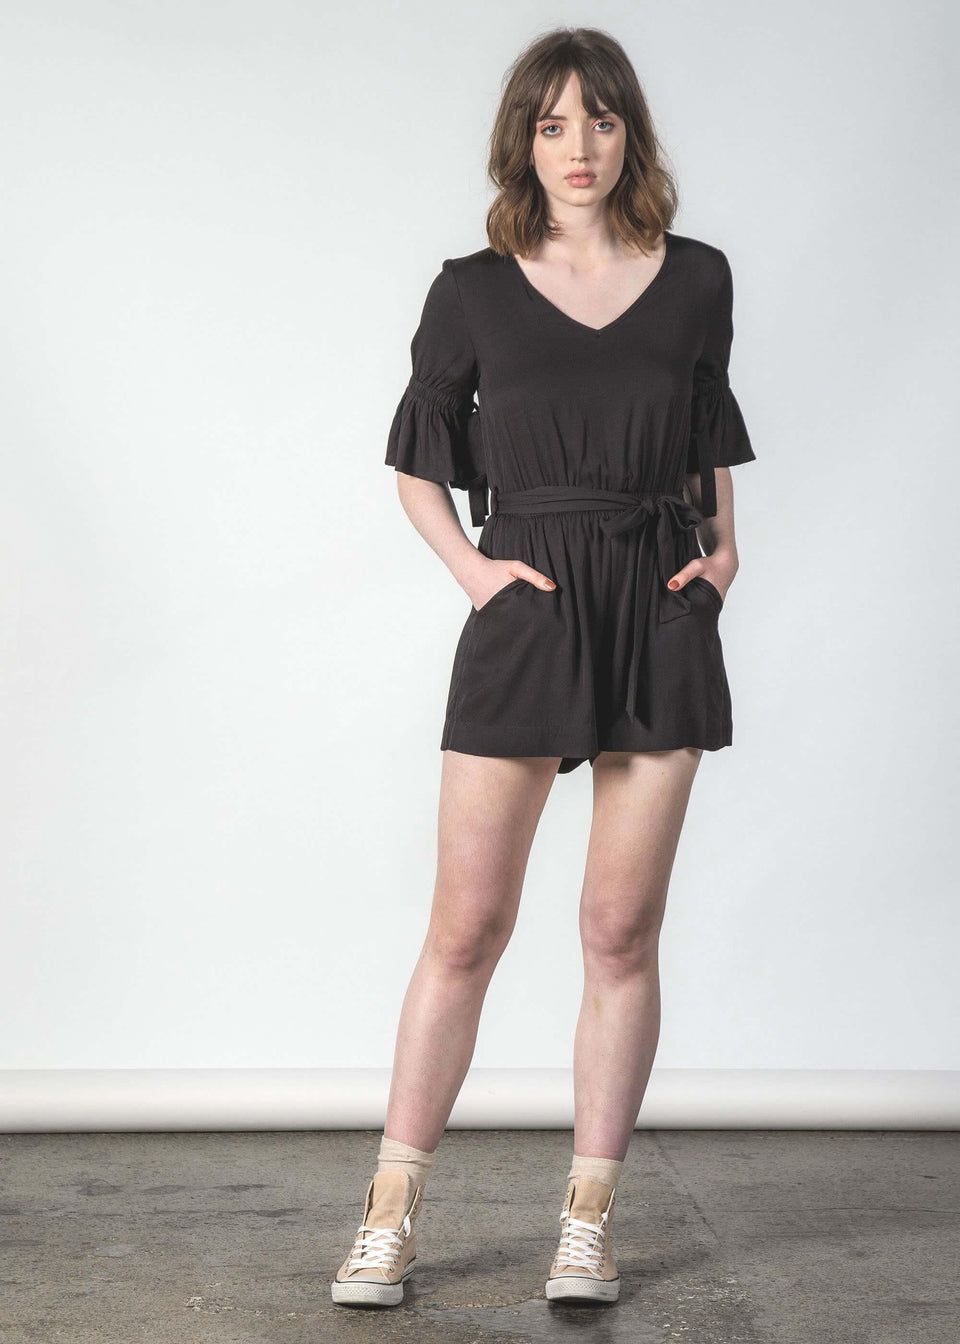 Tresspass Playsuit Black - Saint Street